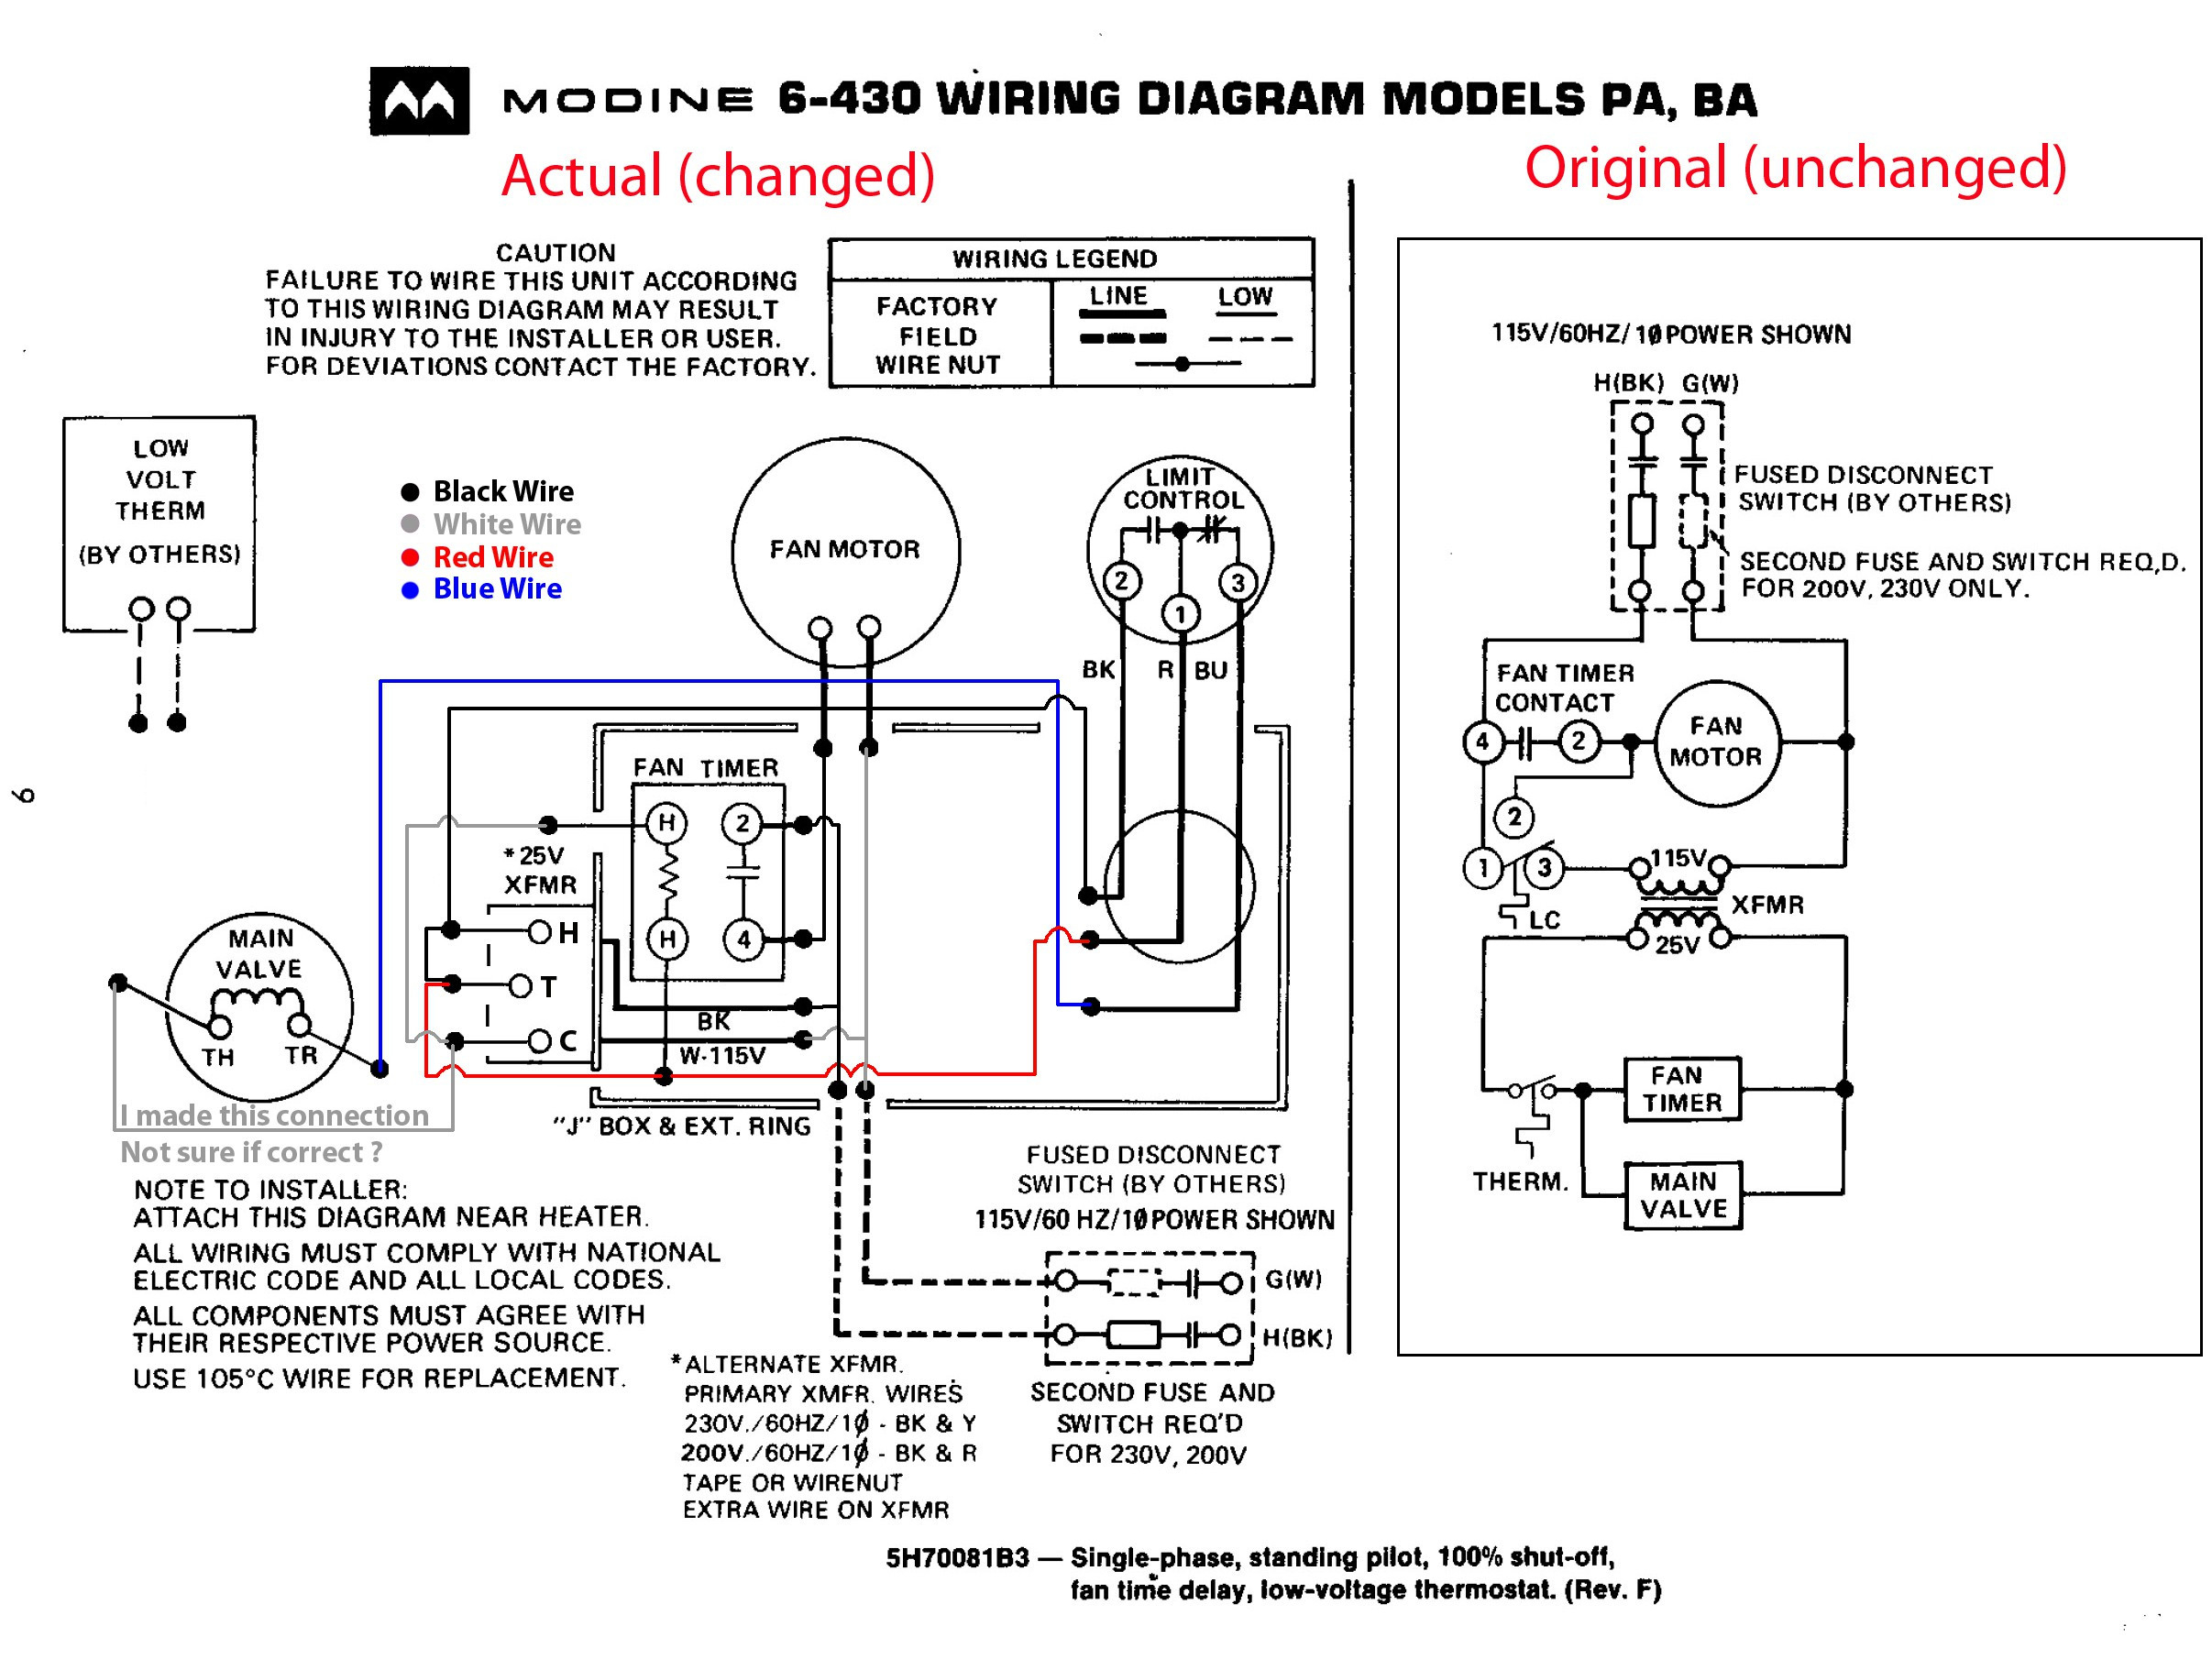 Get Modine Gas Heater Wiring Diagram Sample